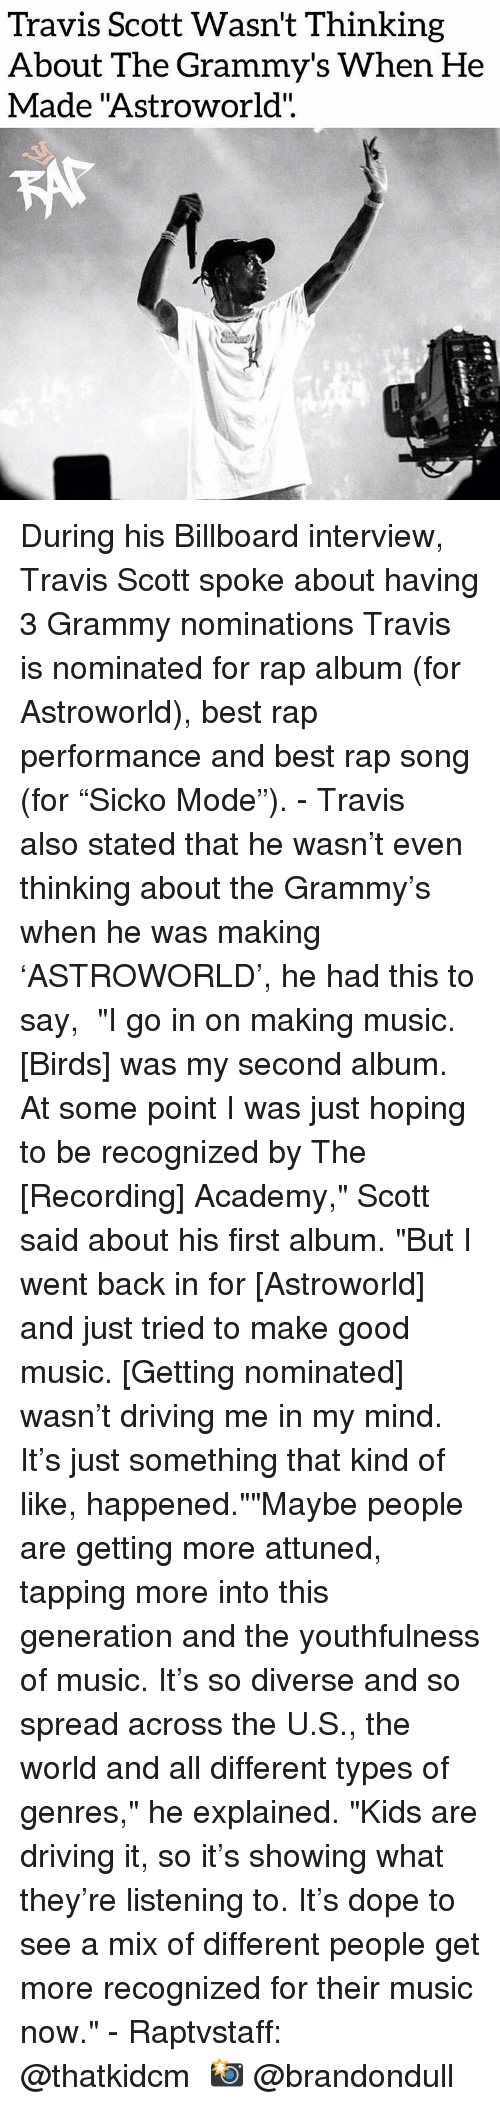 """Billboard, Dope, and Driving: Travis Scott Wasn't Thinking  About The Grammy's When He  Made """"Astroworld"""".  CO During his Billboard interview, Travis Scott spoke about having 3 Grammy nominations Travis is nominated for rap album (for Astroworld), best rap performance and best rap song (for """"Sicko Mode""""). - Travis also stated that he wasn't even thinking about the Grammy's when he was making 'ASTROWORLD', he had this to say,  """"I go in on making music. [Birds] was my second album. At some point I was just hoping to be recognized by The [Recording] Academy,"""" Scott said about his first album. """"But I went back in for [Astroworld] and just tried to make good music. [Getting nominated] wasn't driving me in my mind. It's just something that kind of like, happened.""""""""Maybe people are getting more attuned, tapping more into this generation and the youthfulness of music. It's so diverse and so spread across the U.S., the world and all different types of genres,"""" he explained. """"Kids are driving it, so it's showing what they're listening to. It's dope to see a mix of different people get more recognized for their music now."""" - Raptvstaff: @thatkidcm 📸 @brandondull"""